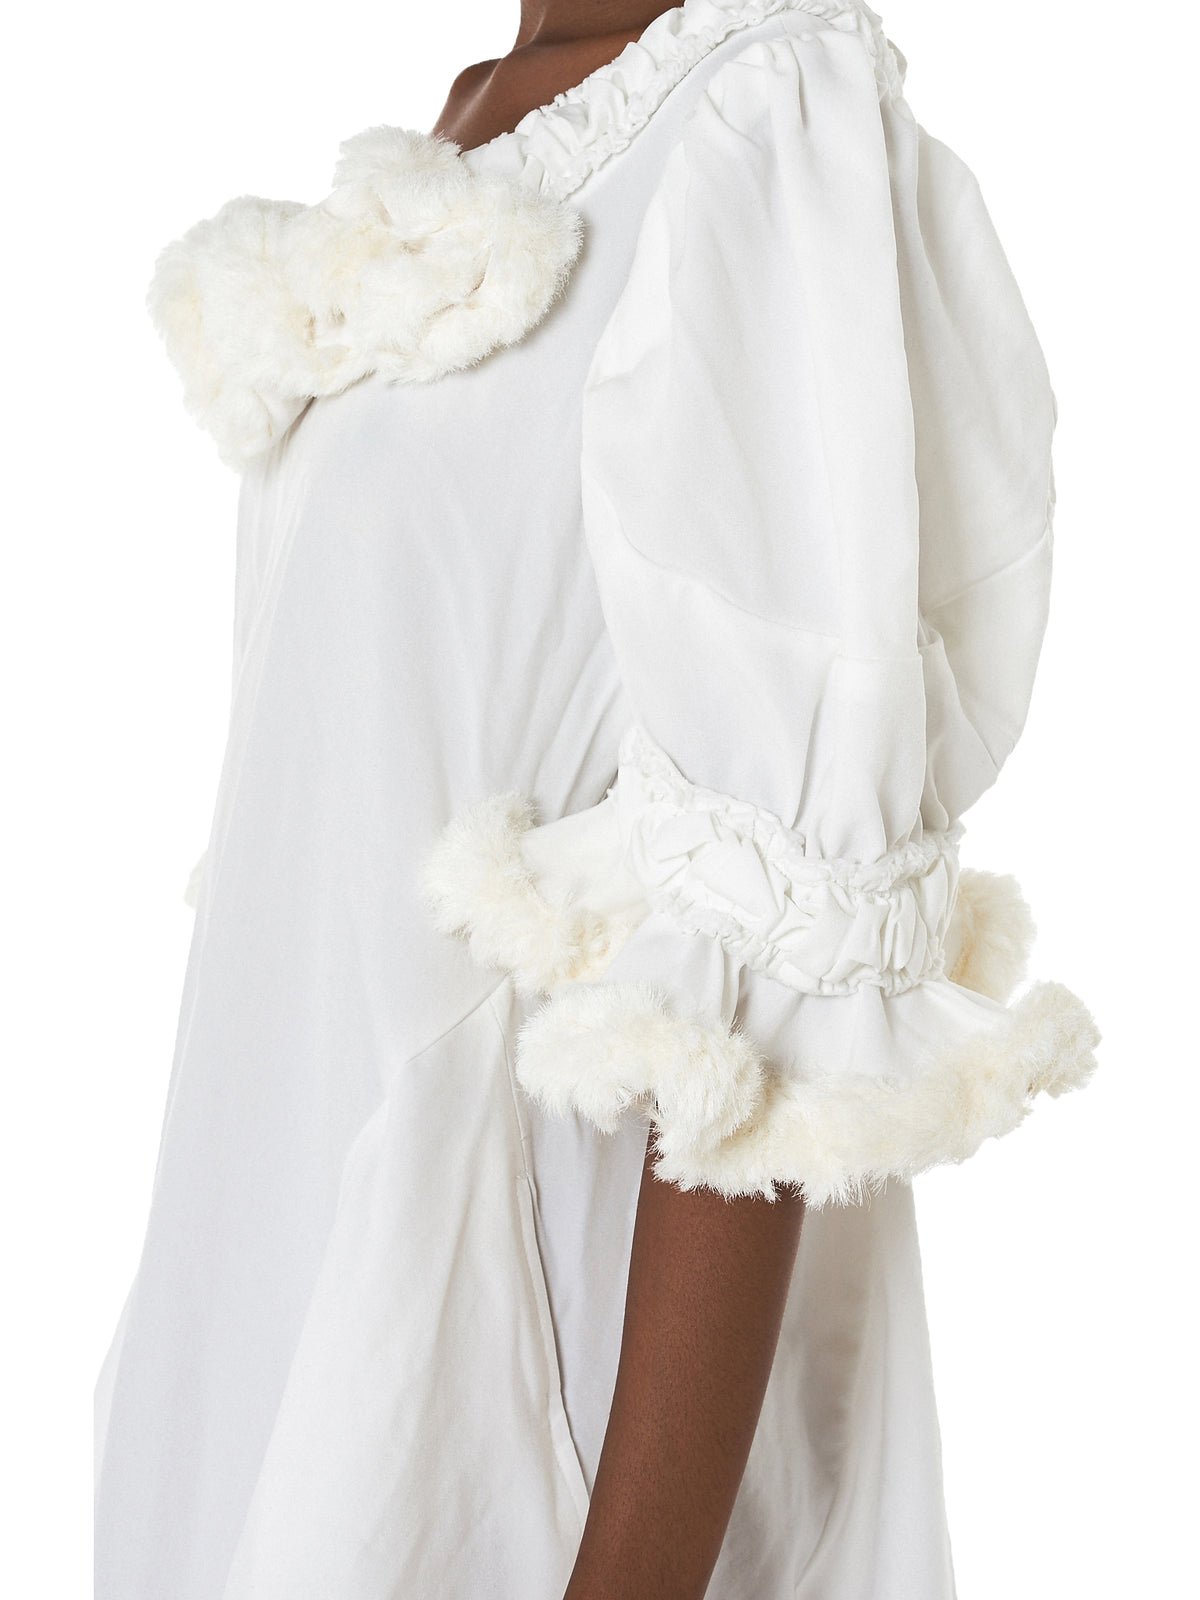 Ruffled Shearling Dress (GA-O049-051-1)